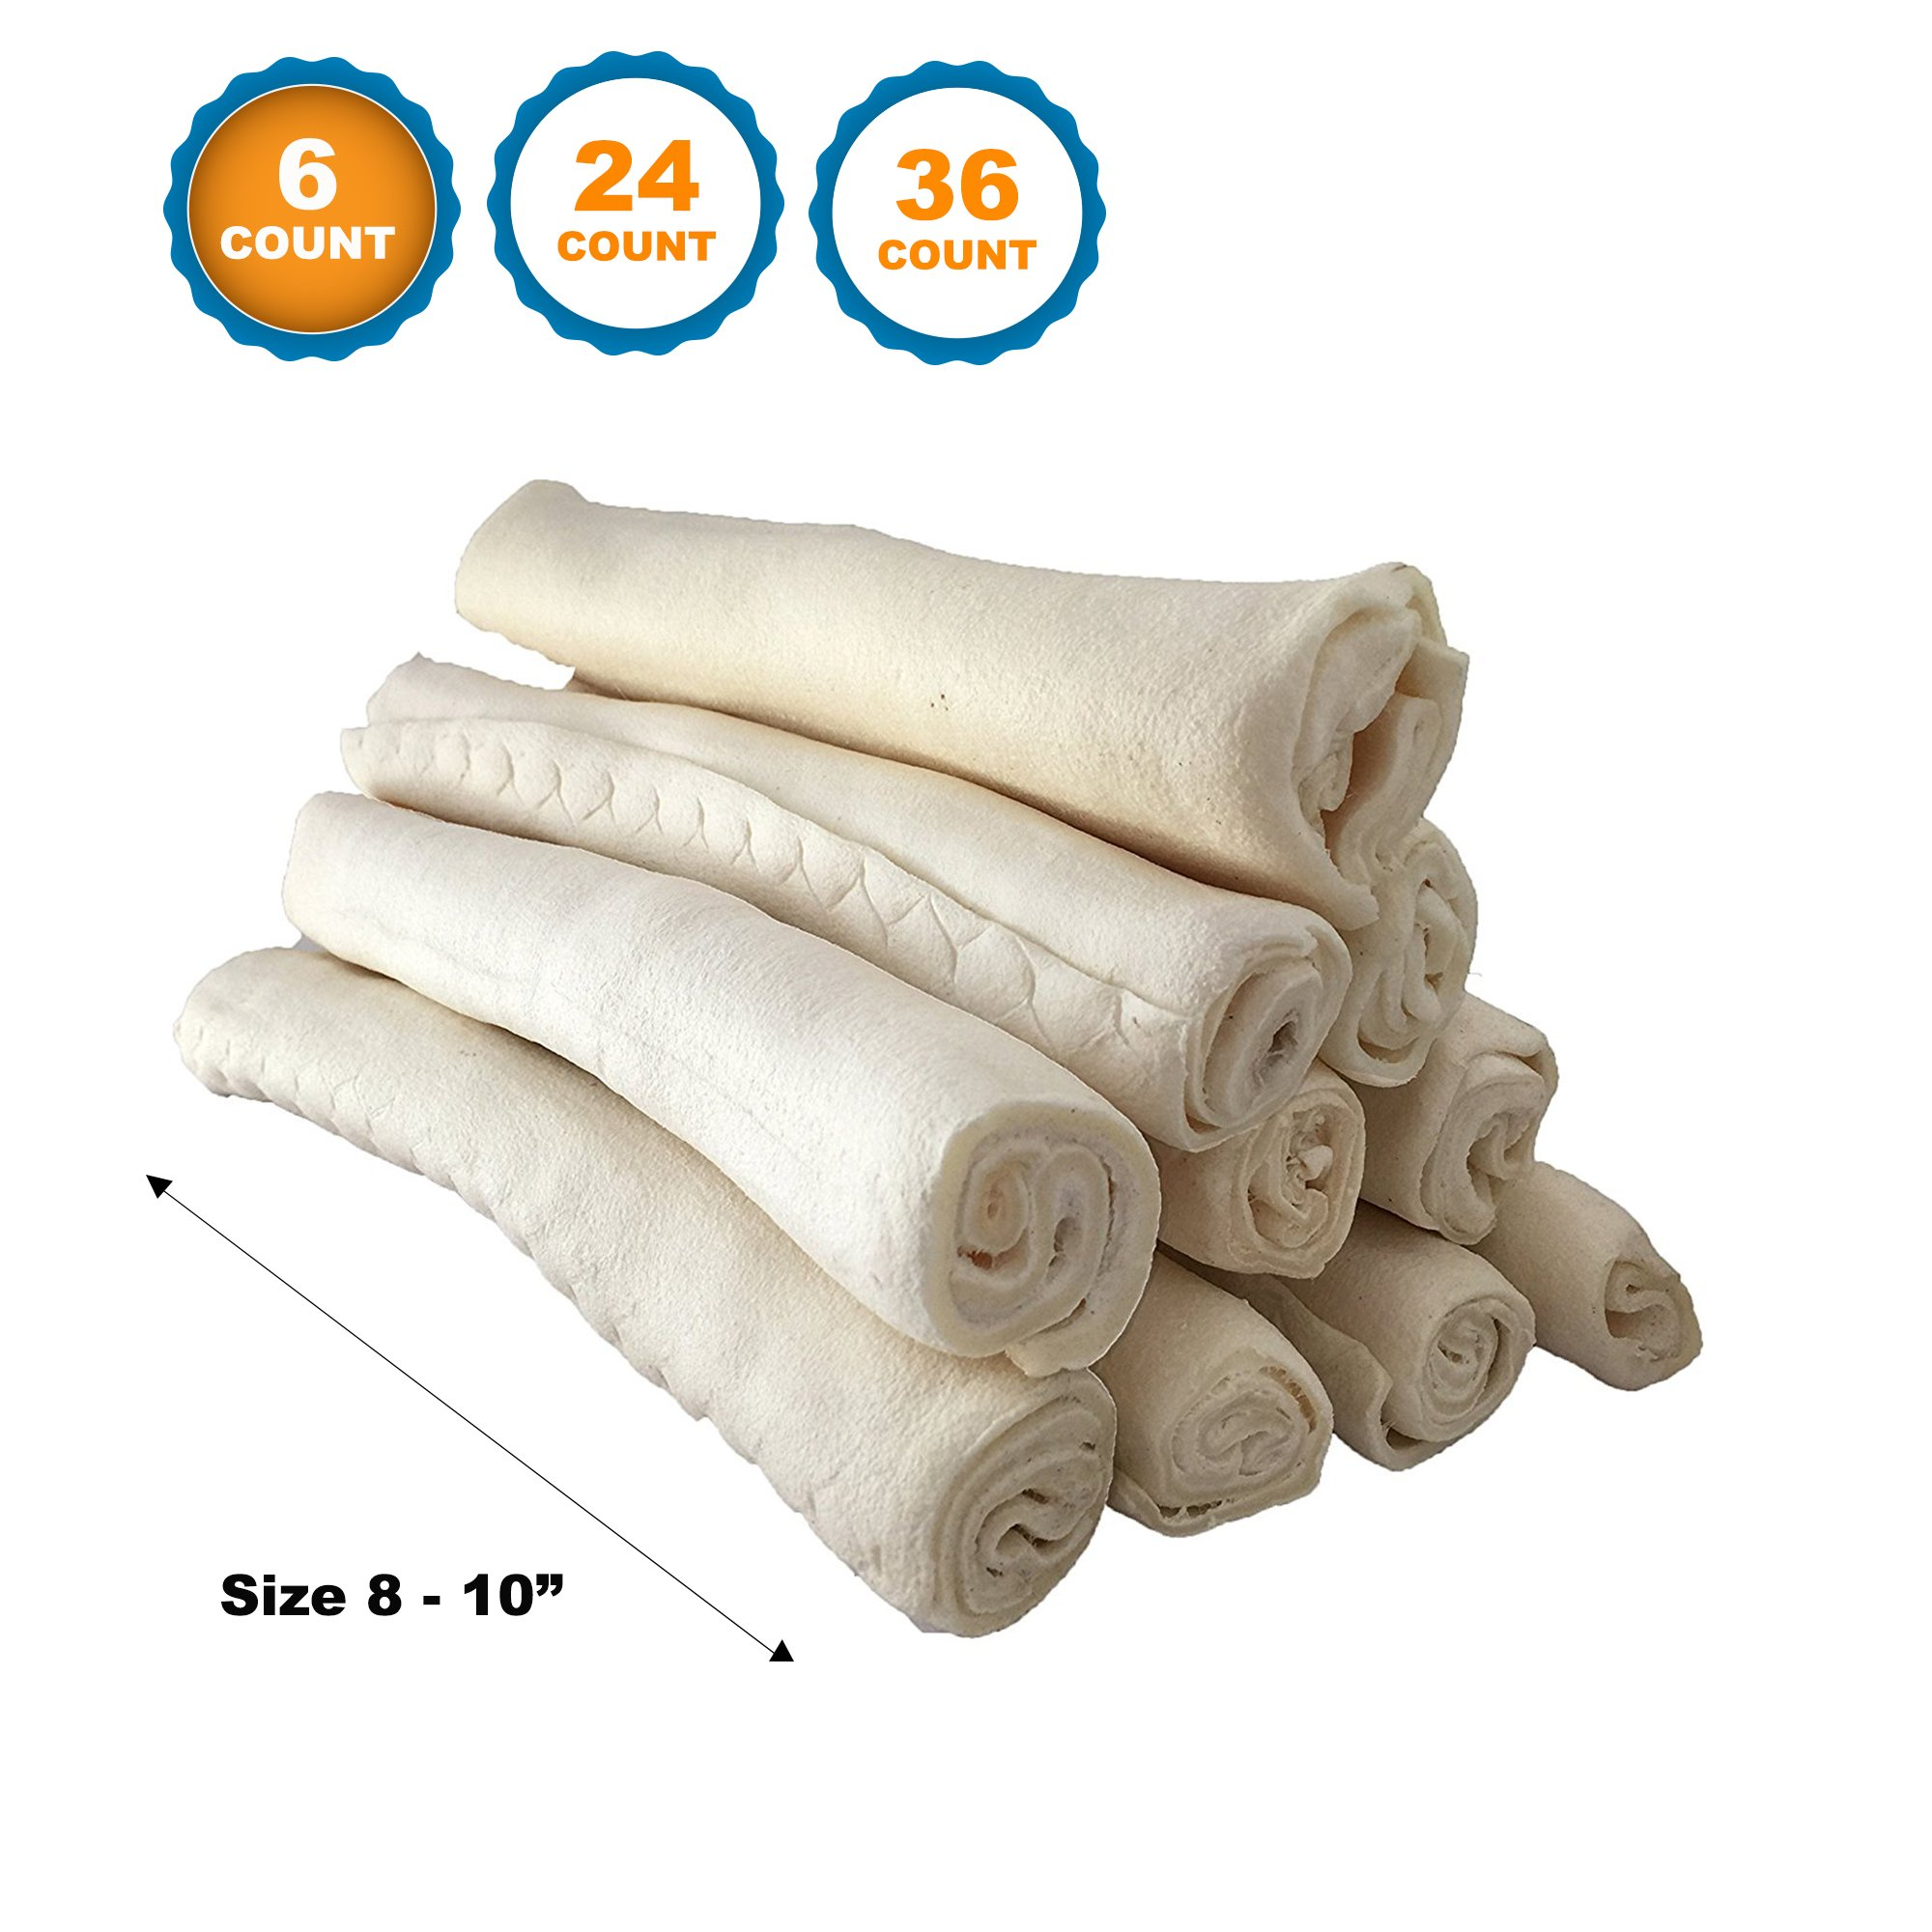 """123 Treats Premium Rawhide Retriever Rolls For Dogs 8-10"""" (6 Count) 100% All-Natural Grass-Fed Free-Range Hand Rolled Beef Rawhide High-Protein Healthy Chew Treats To Improve Pet Dental Hygiene"""